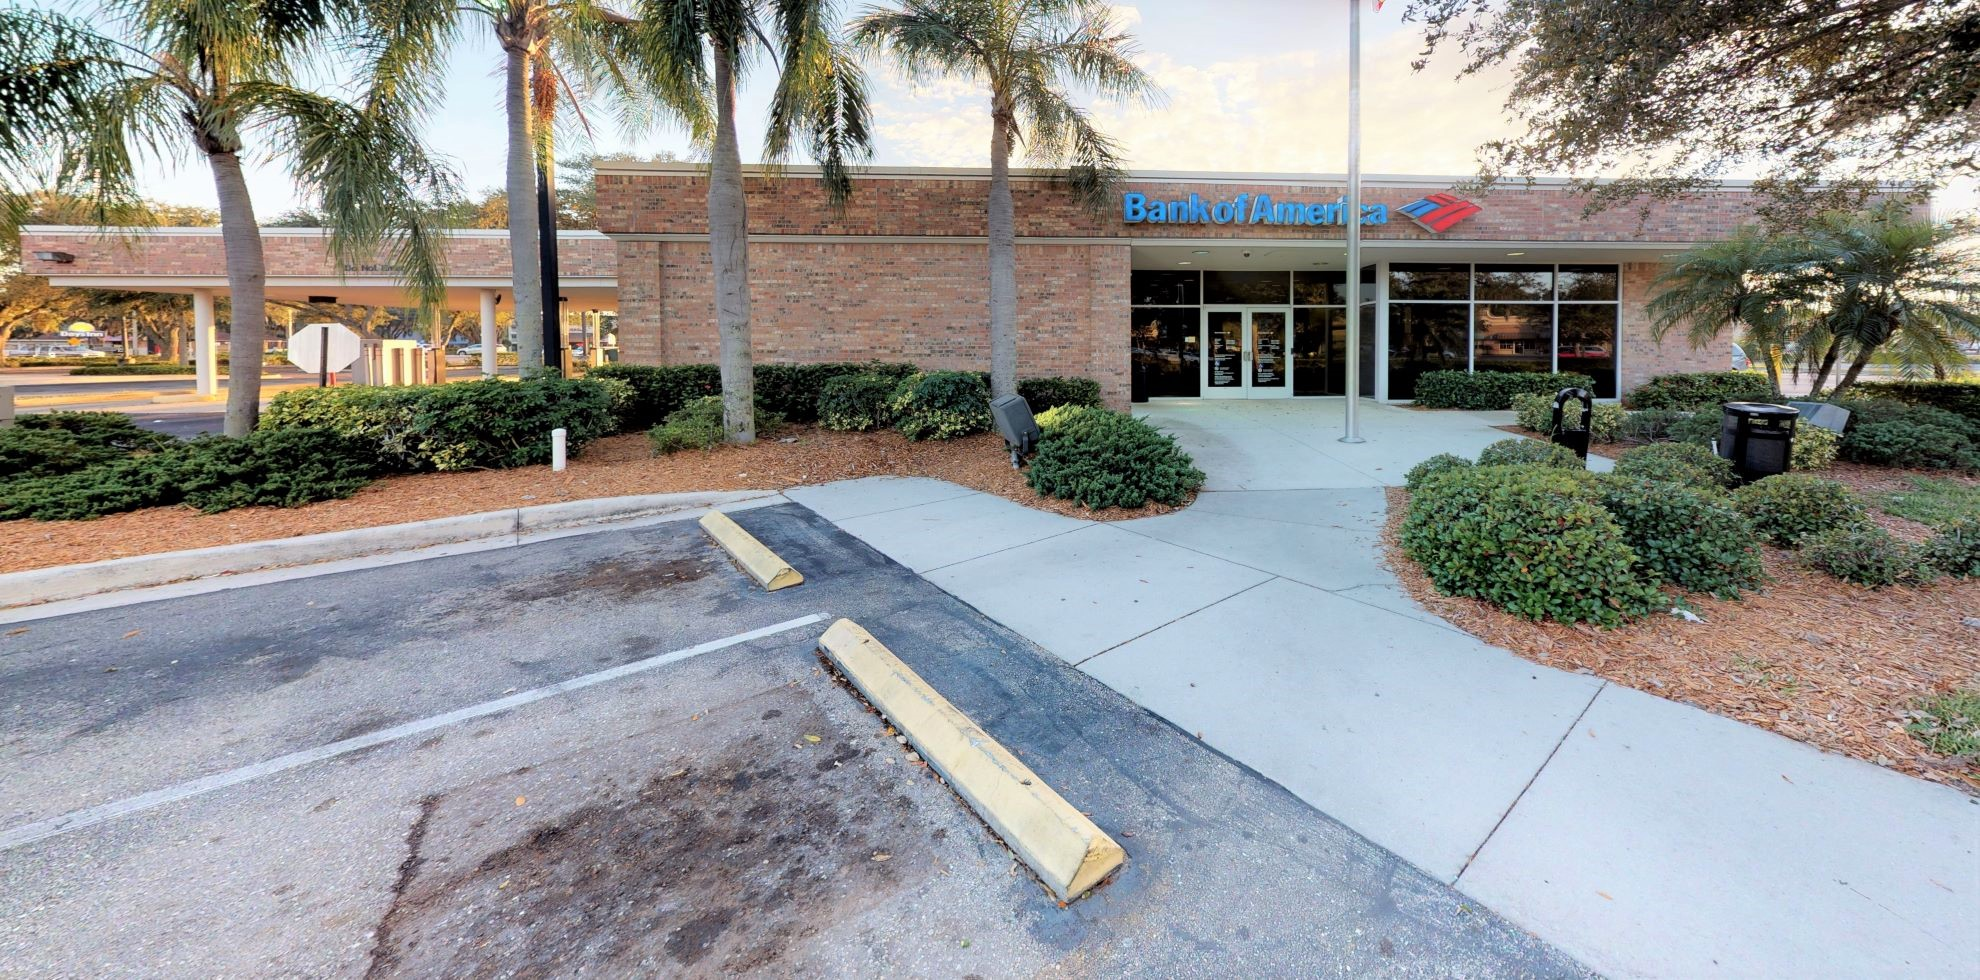 Bank of America financial center with drive-thru ATM and teller   1930 Tamiami Trl, Port Charlotte, FL 33948